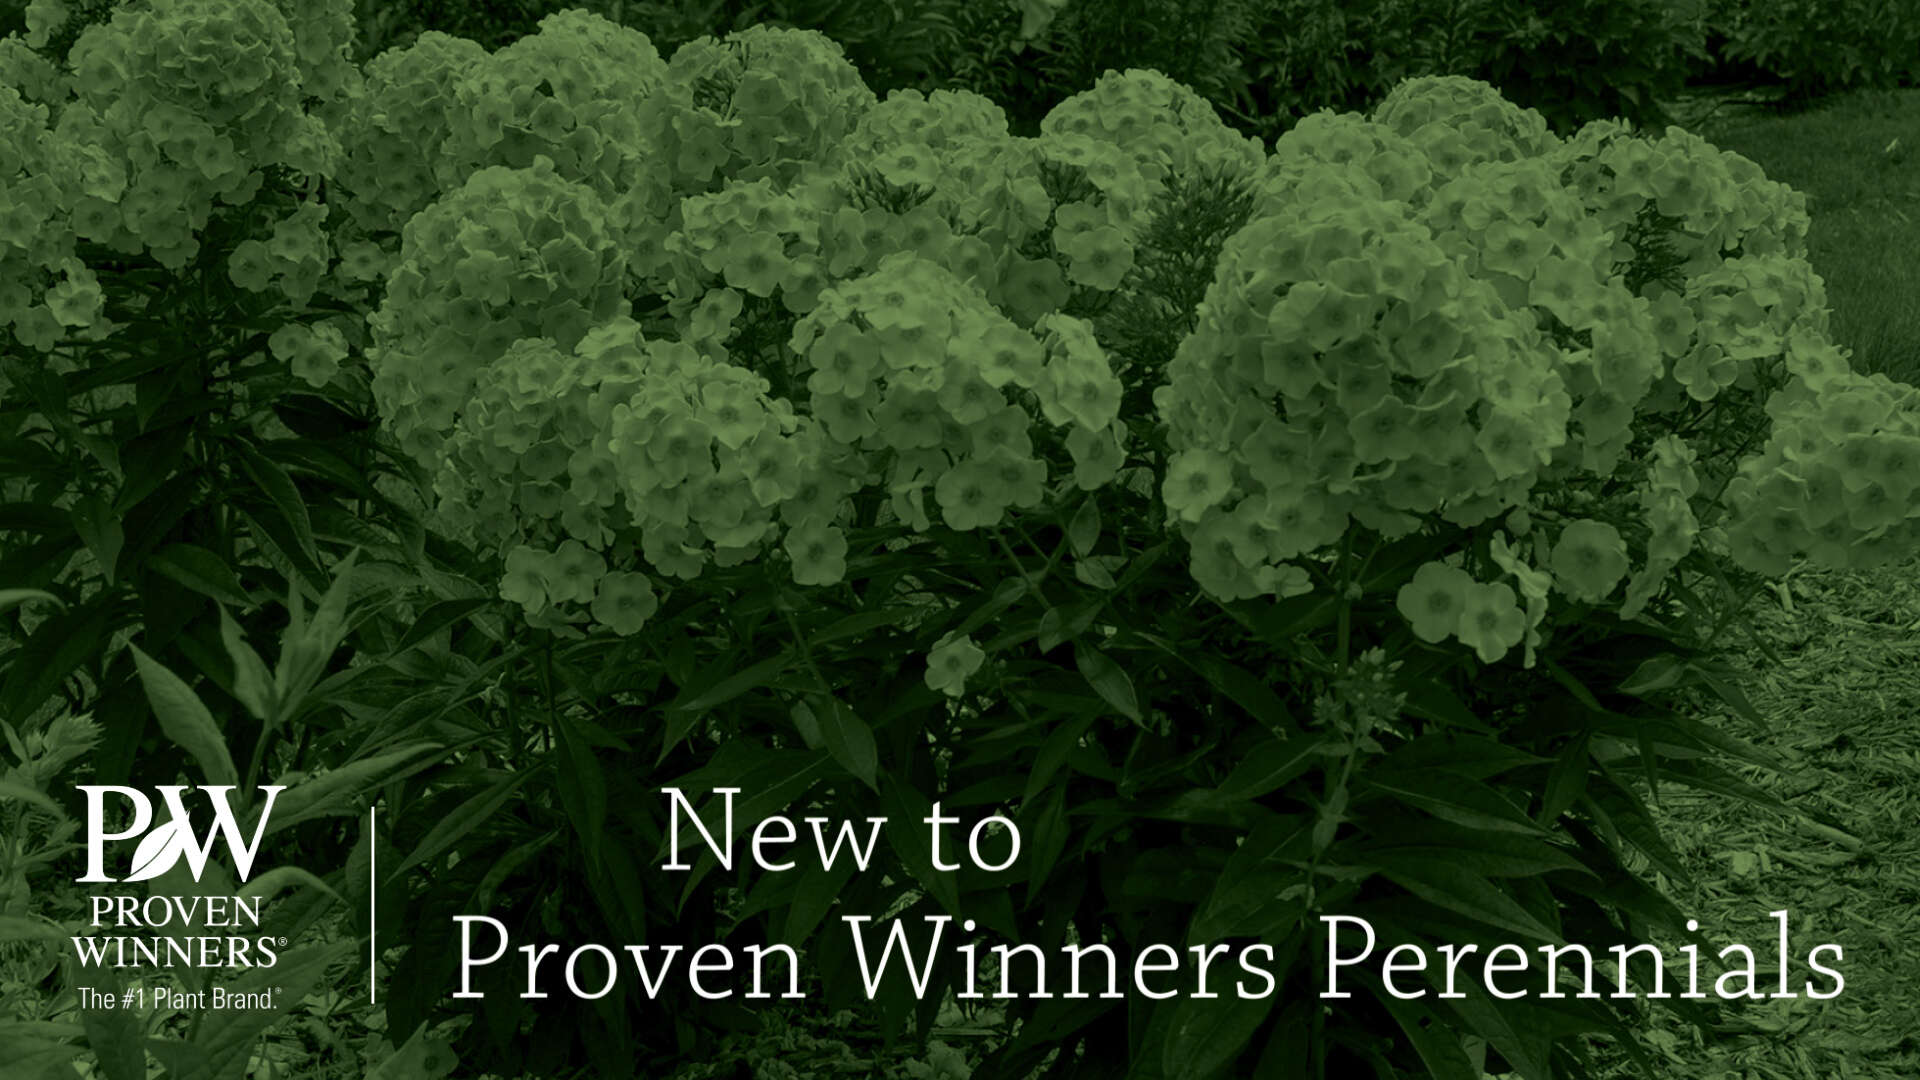 New to Proven Winners Perennials (Retail 2021)